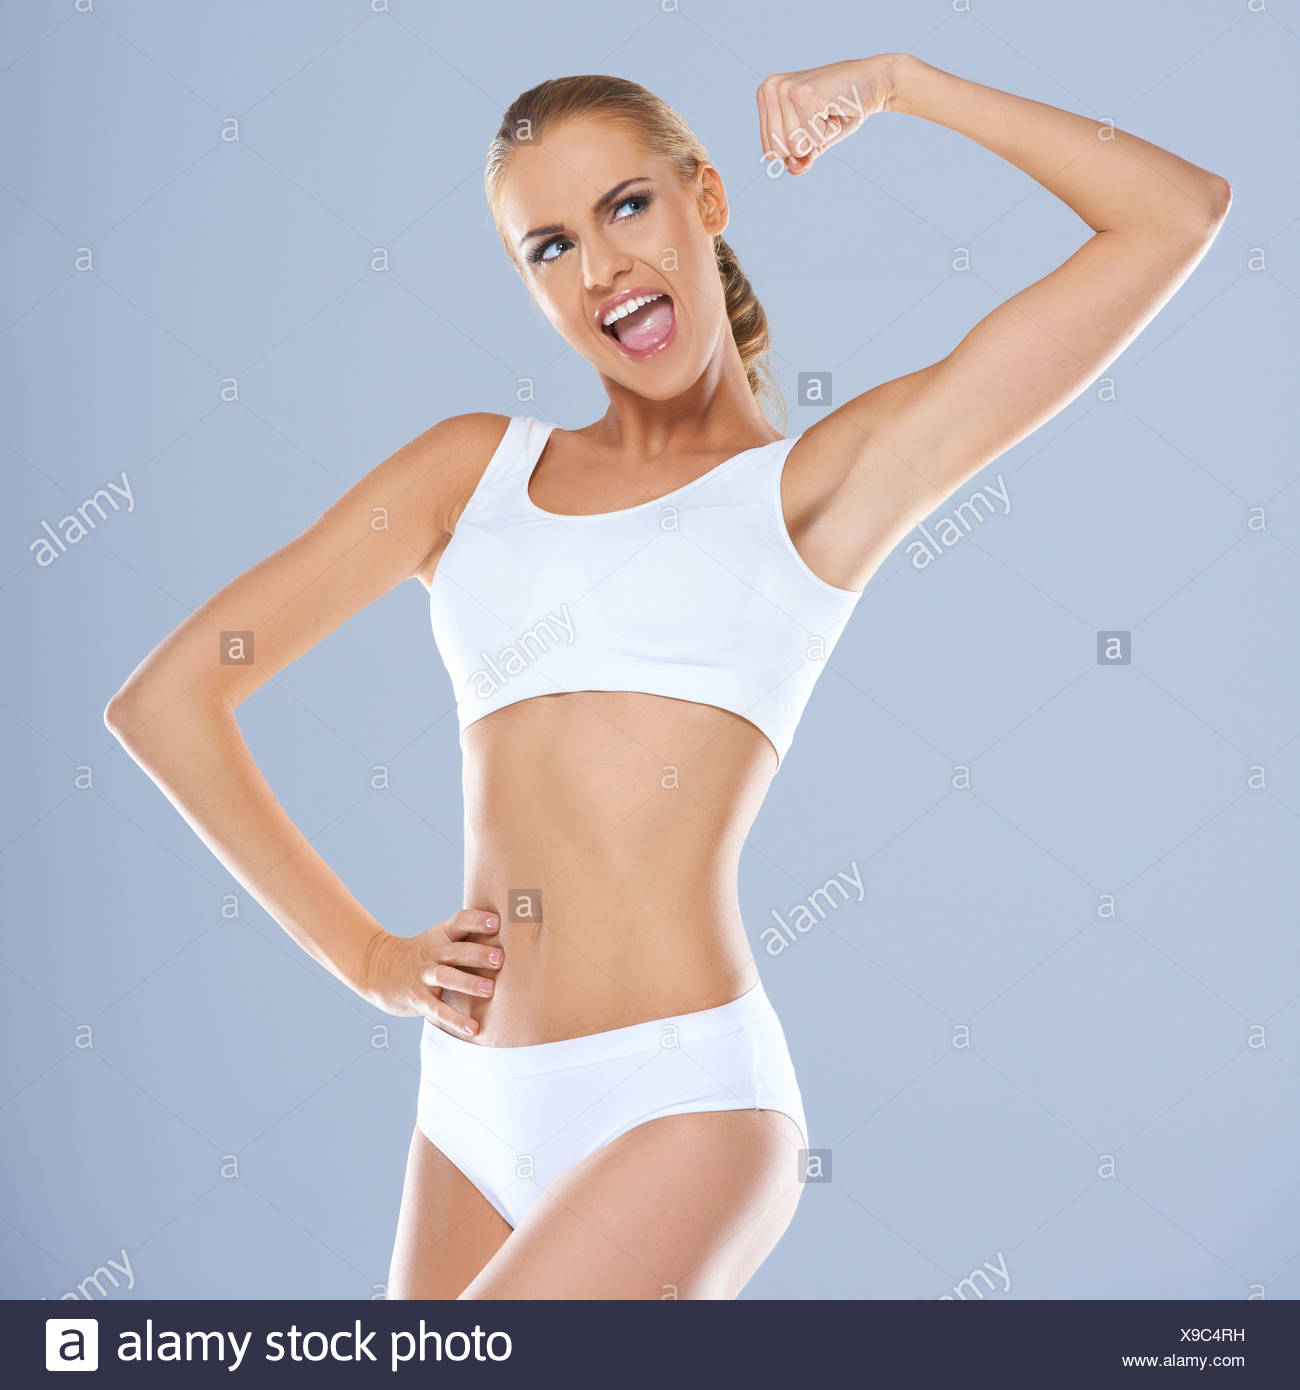 8f2d5ad2003 Portrait of young woman in white sportsbra smiling - Stock Image